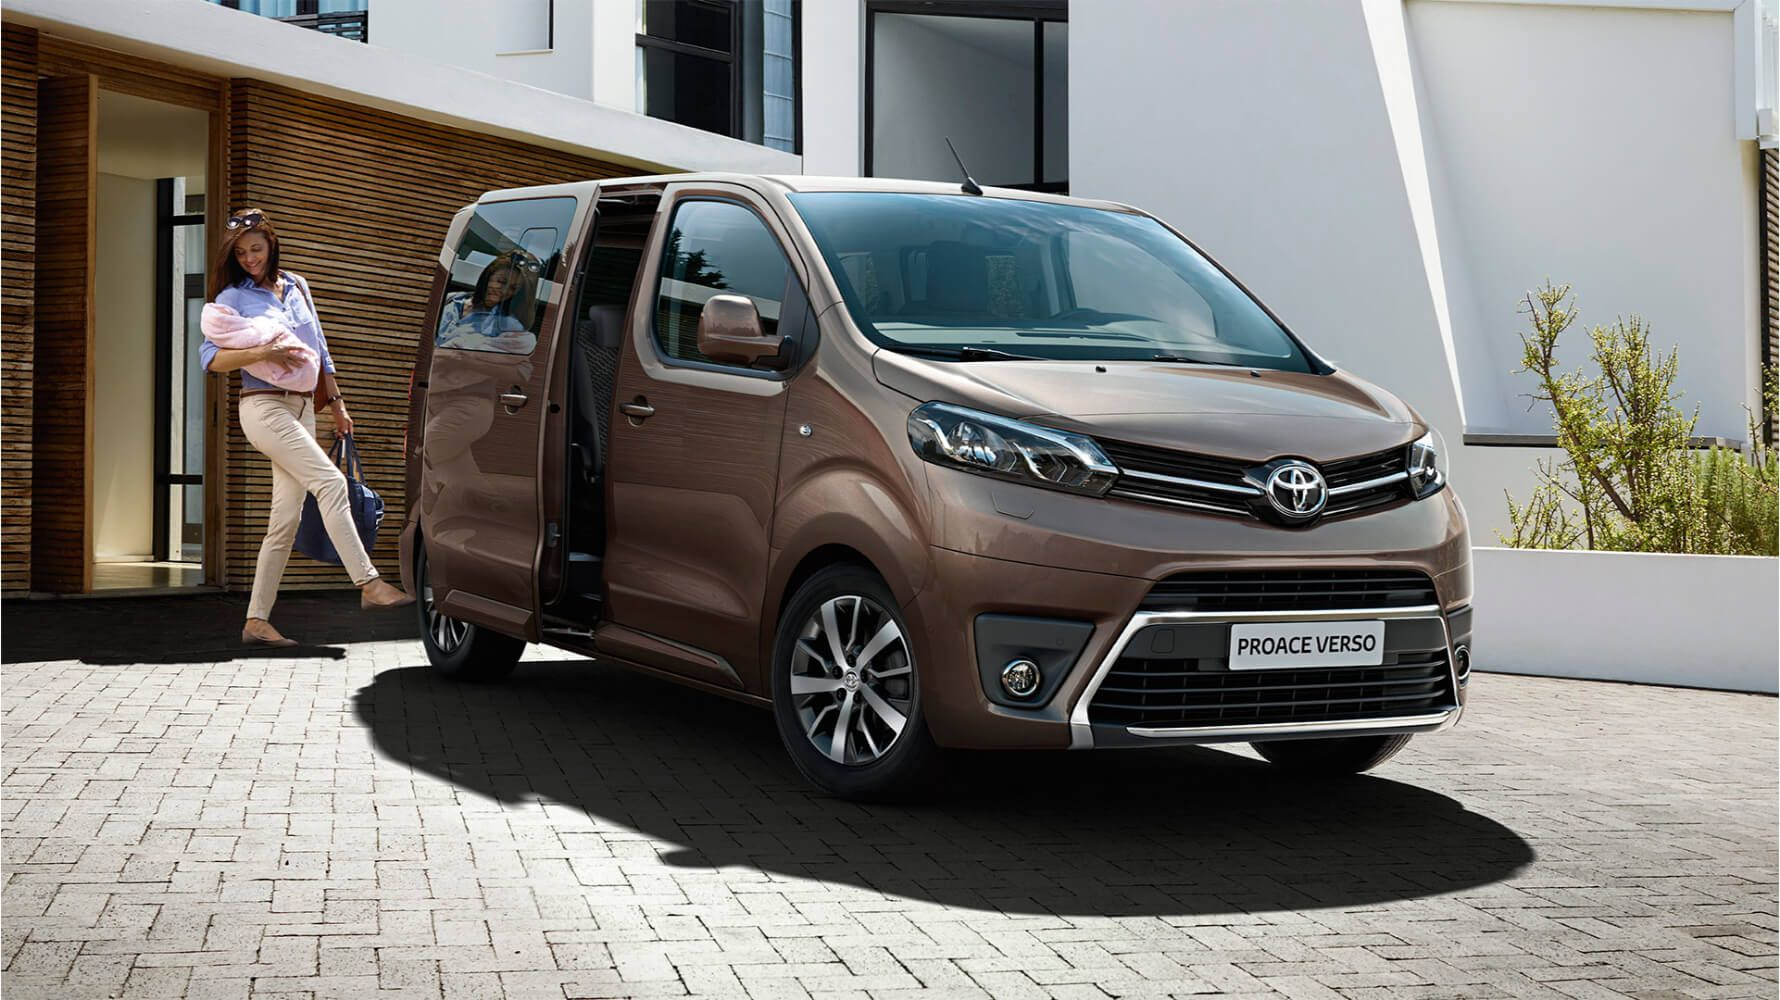 toyota_proace_verso_2019_gallery_003_full_tcm_3046_1703763